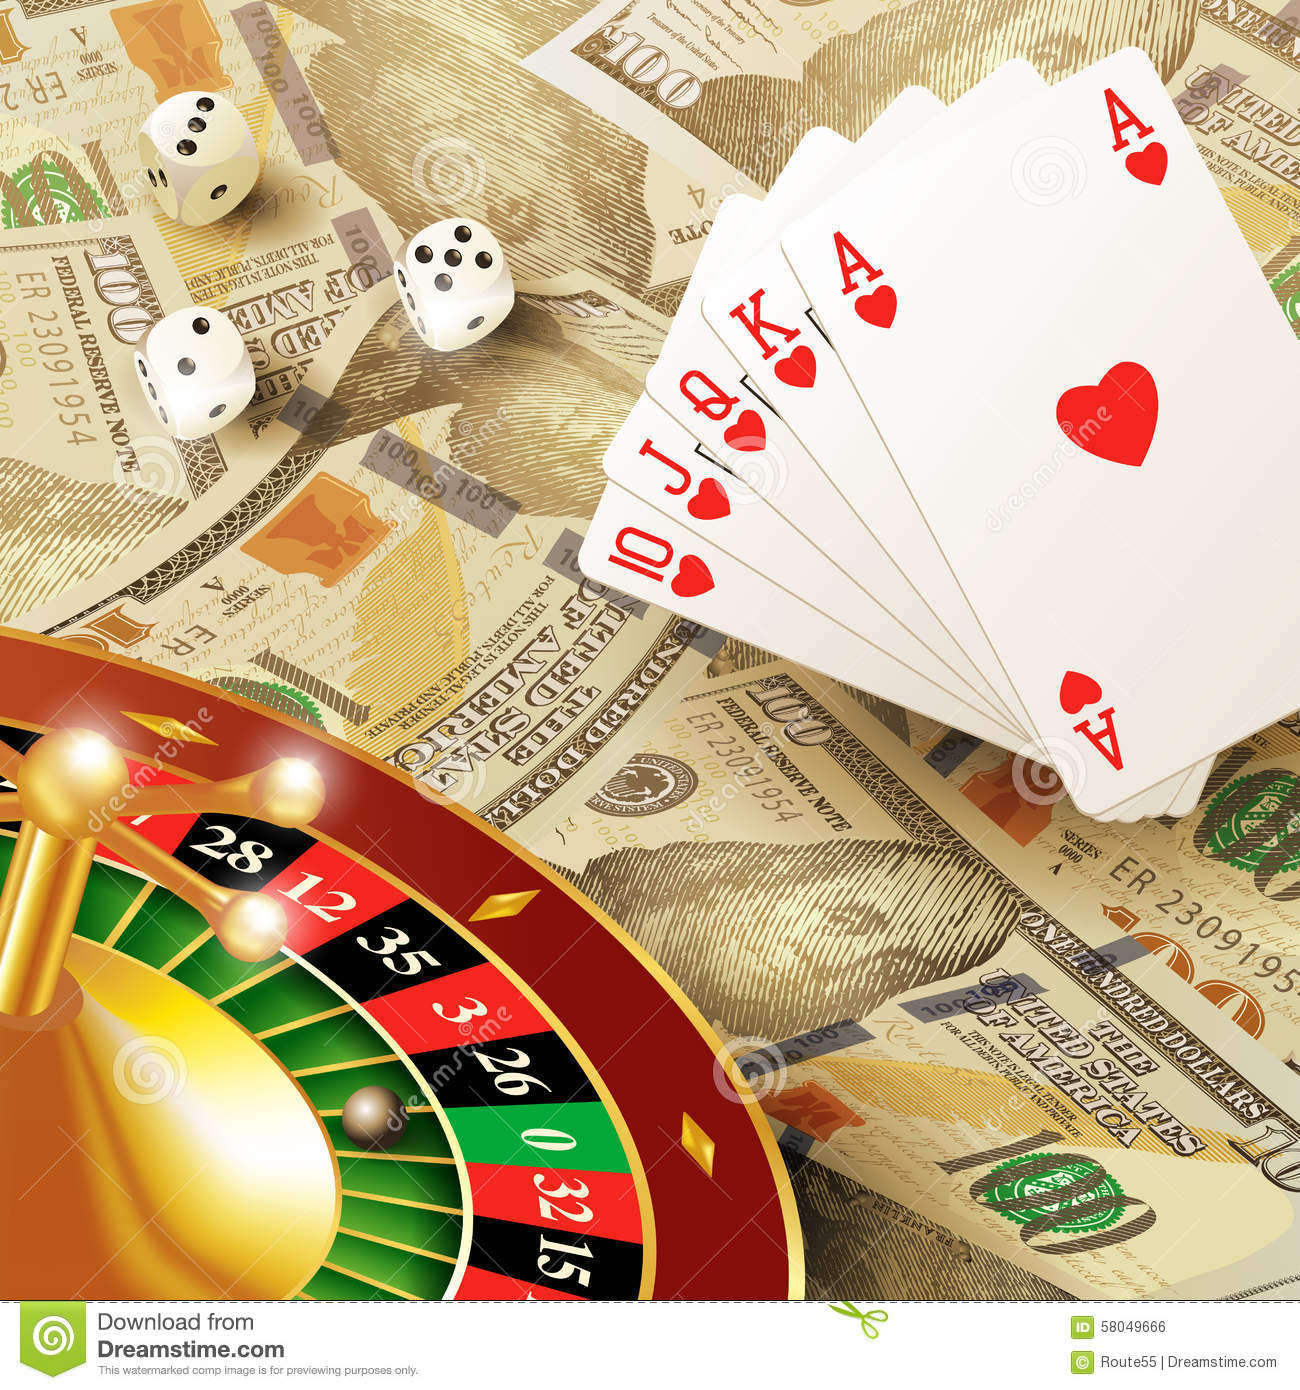 online casino gambling casino games dice